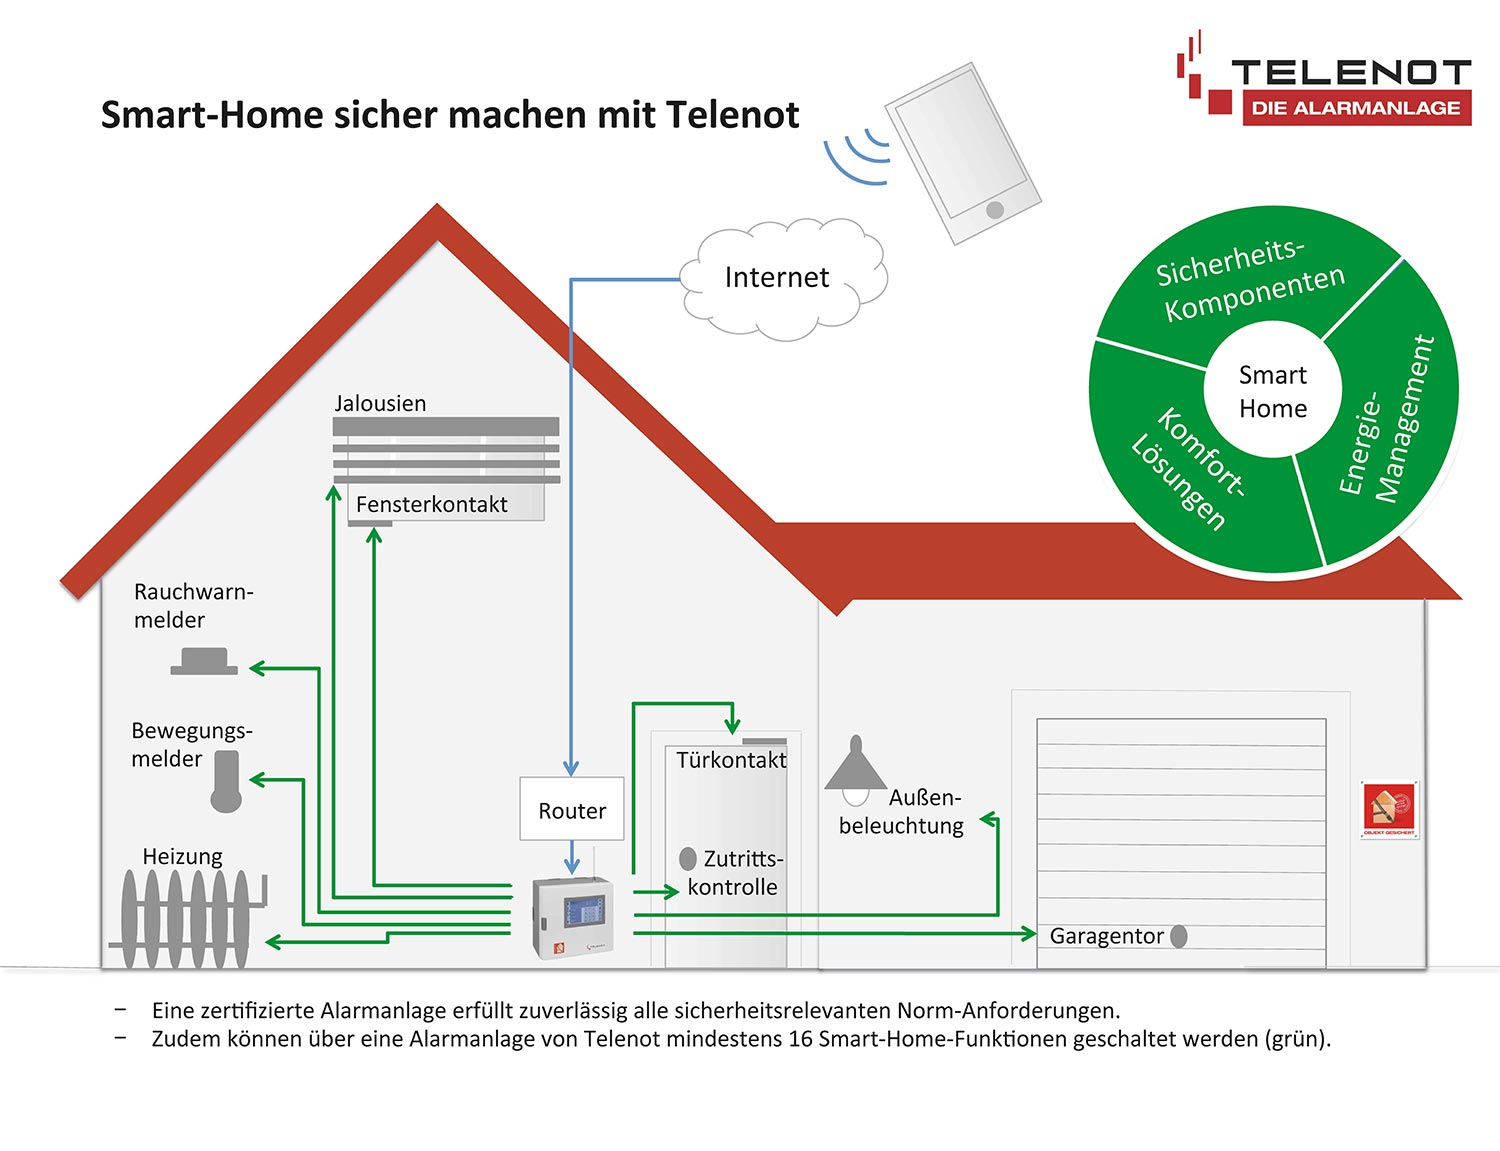 Smart-Home mit Telenot